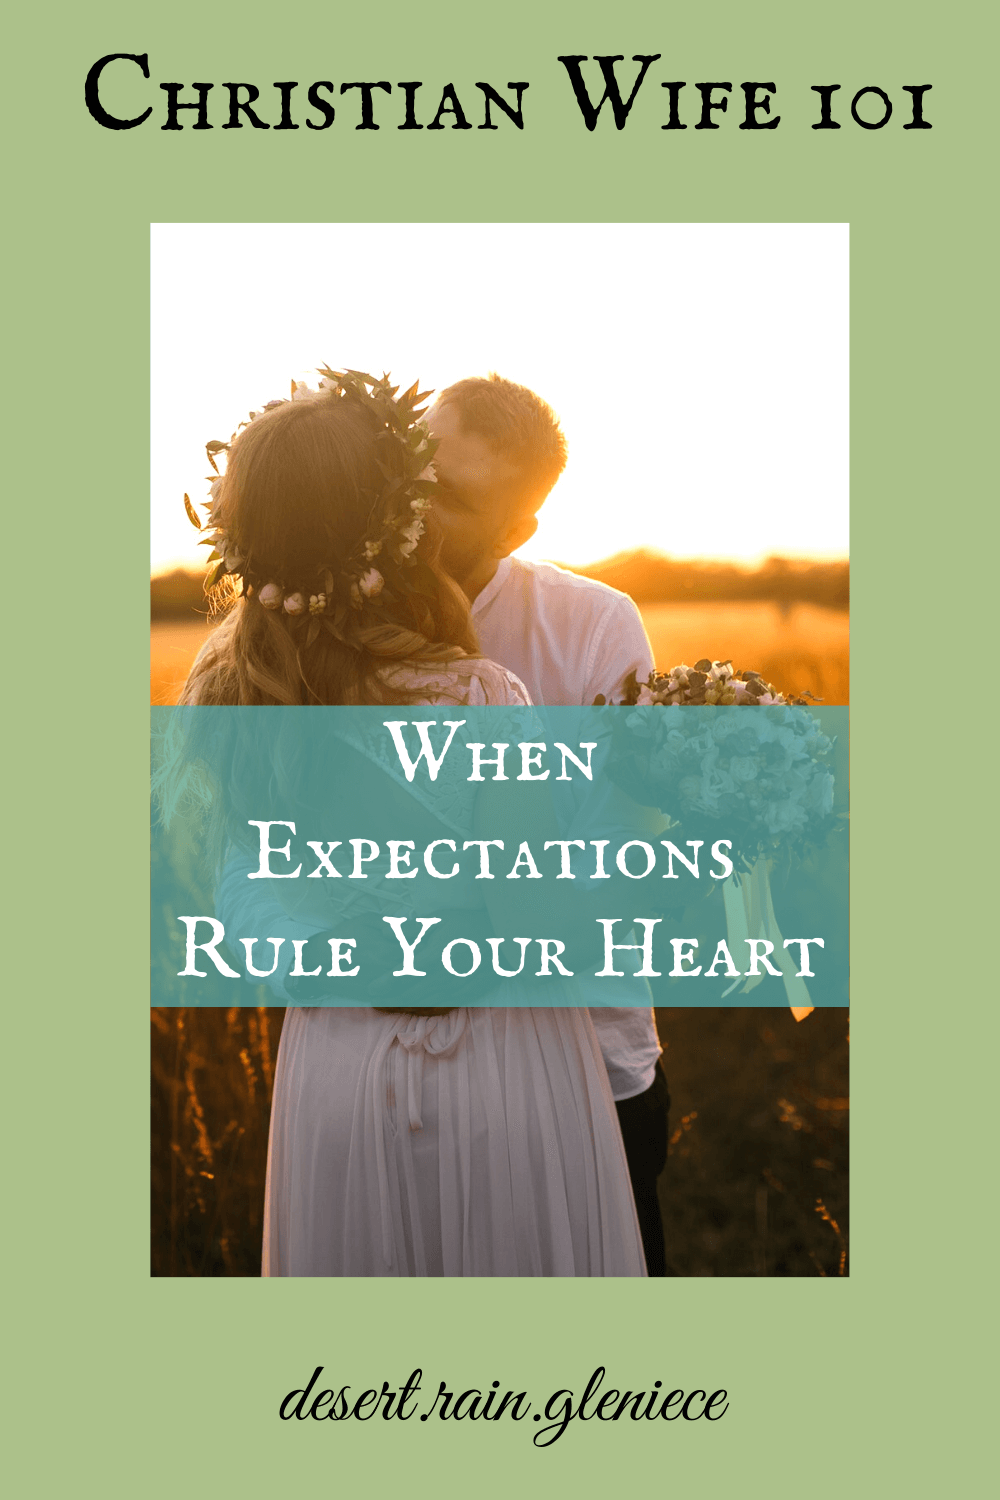 Expectations never go away, do they? As Christian wives, we can let them make us bitter or make us content depending on how much power we give them over our hearts. #christianwife101, #expectations, #tears, #contentment